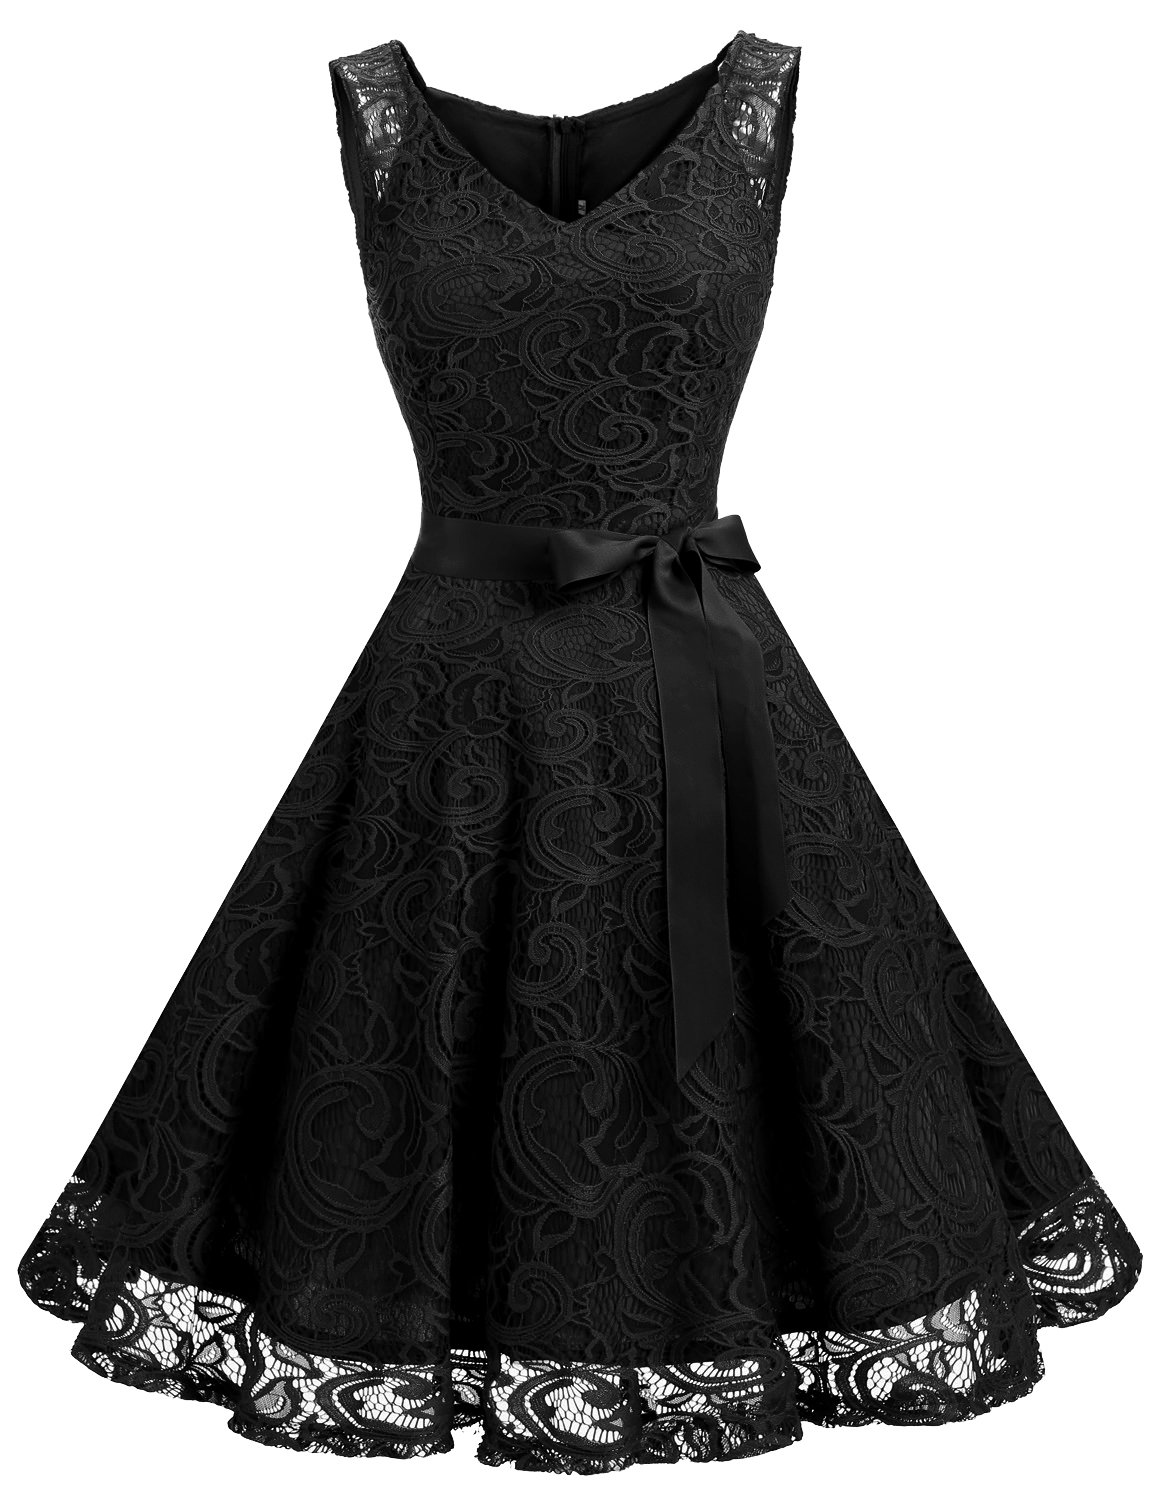 Dressystar Women Floral Lace Bridesmaid Party Dress Short Prom Dress V Neck L Black